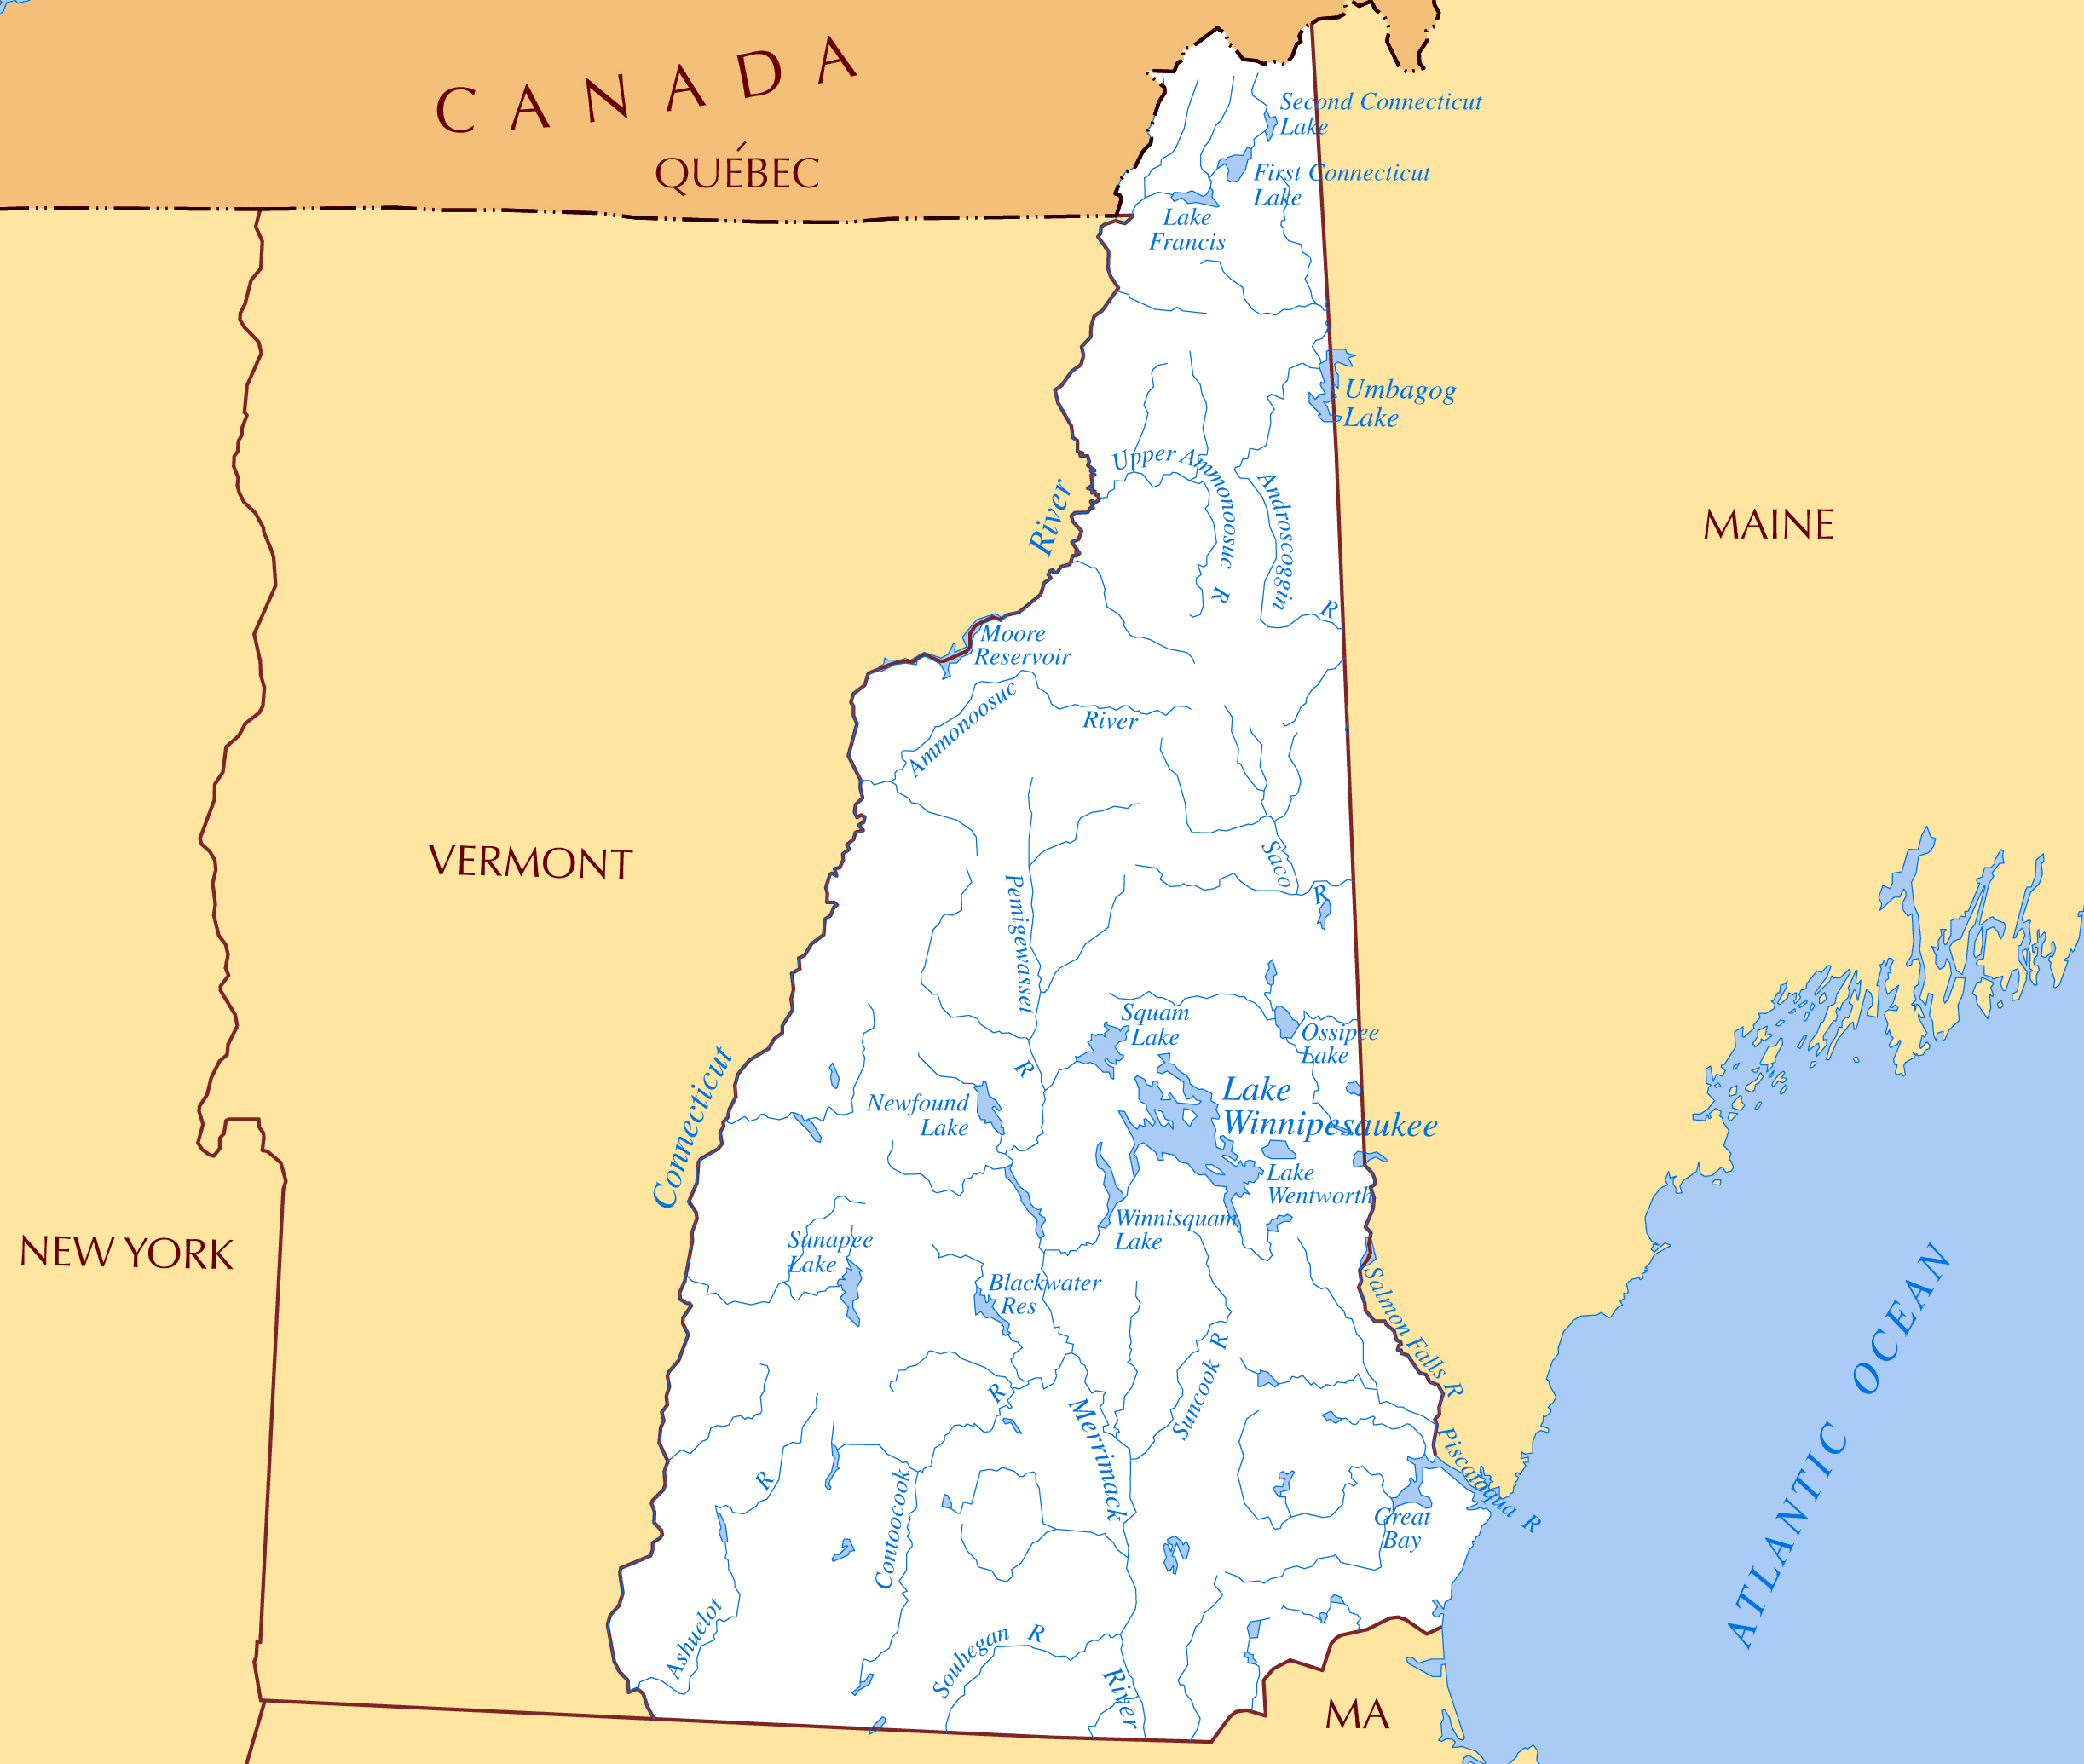 New Hampshire On Map Of Usa.Large Rivers And Lakes Map Of New Hampshire State New Hampshire